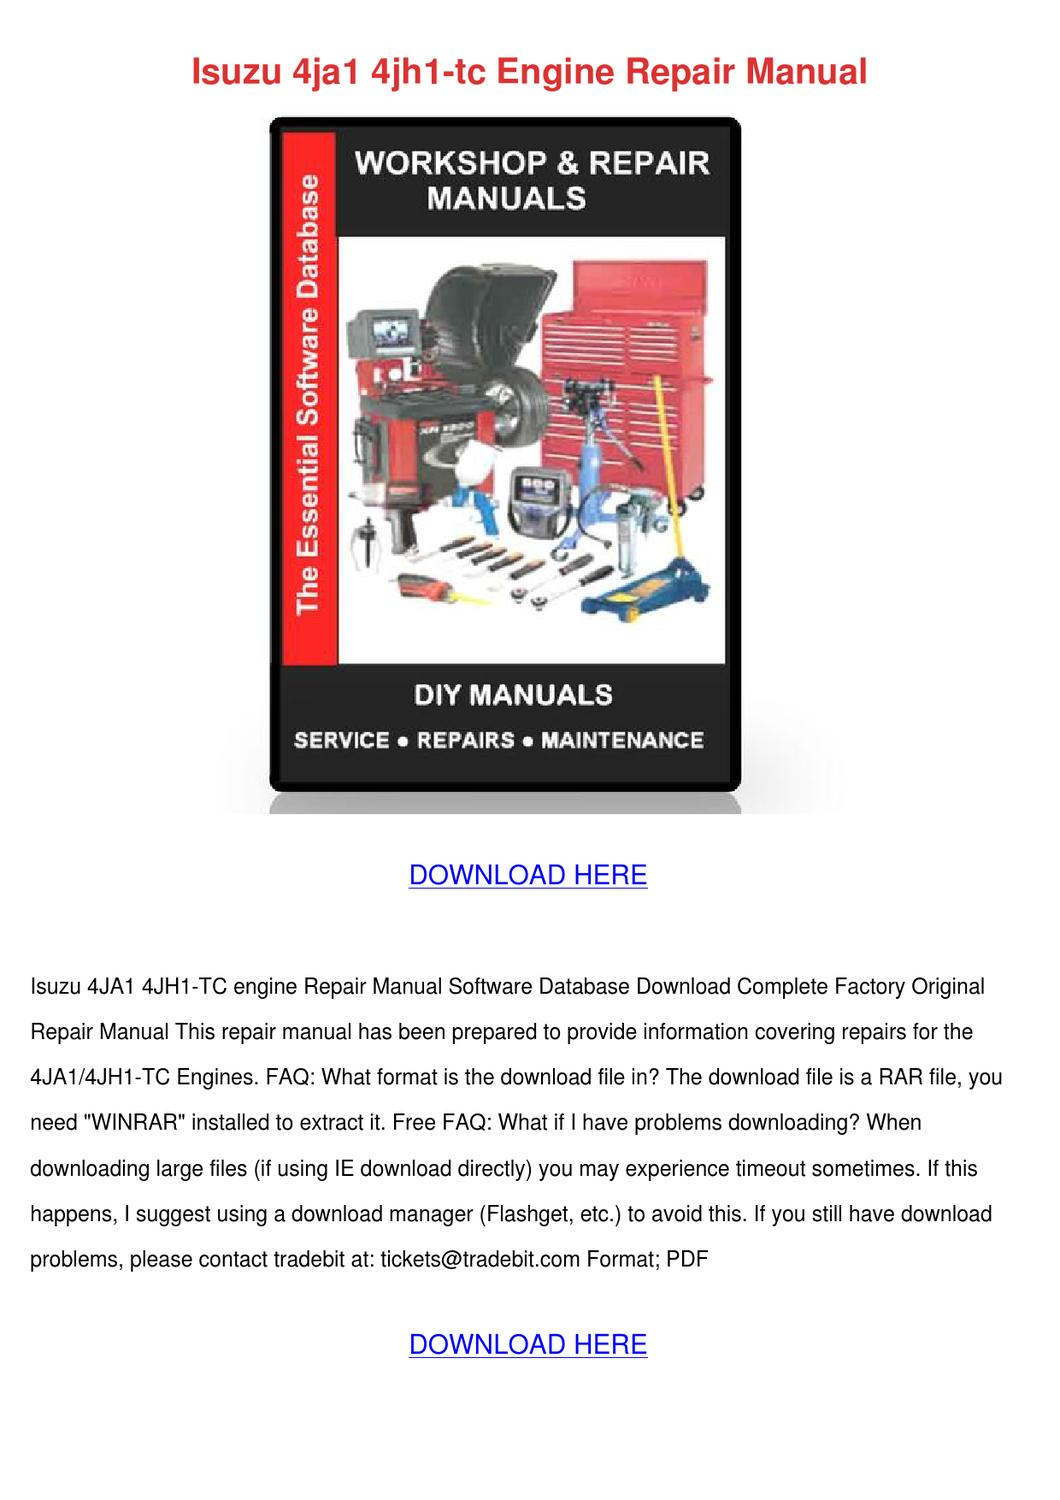 Isuzu 4jh1 Repair Manual